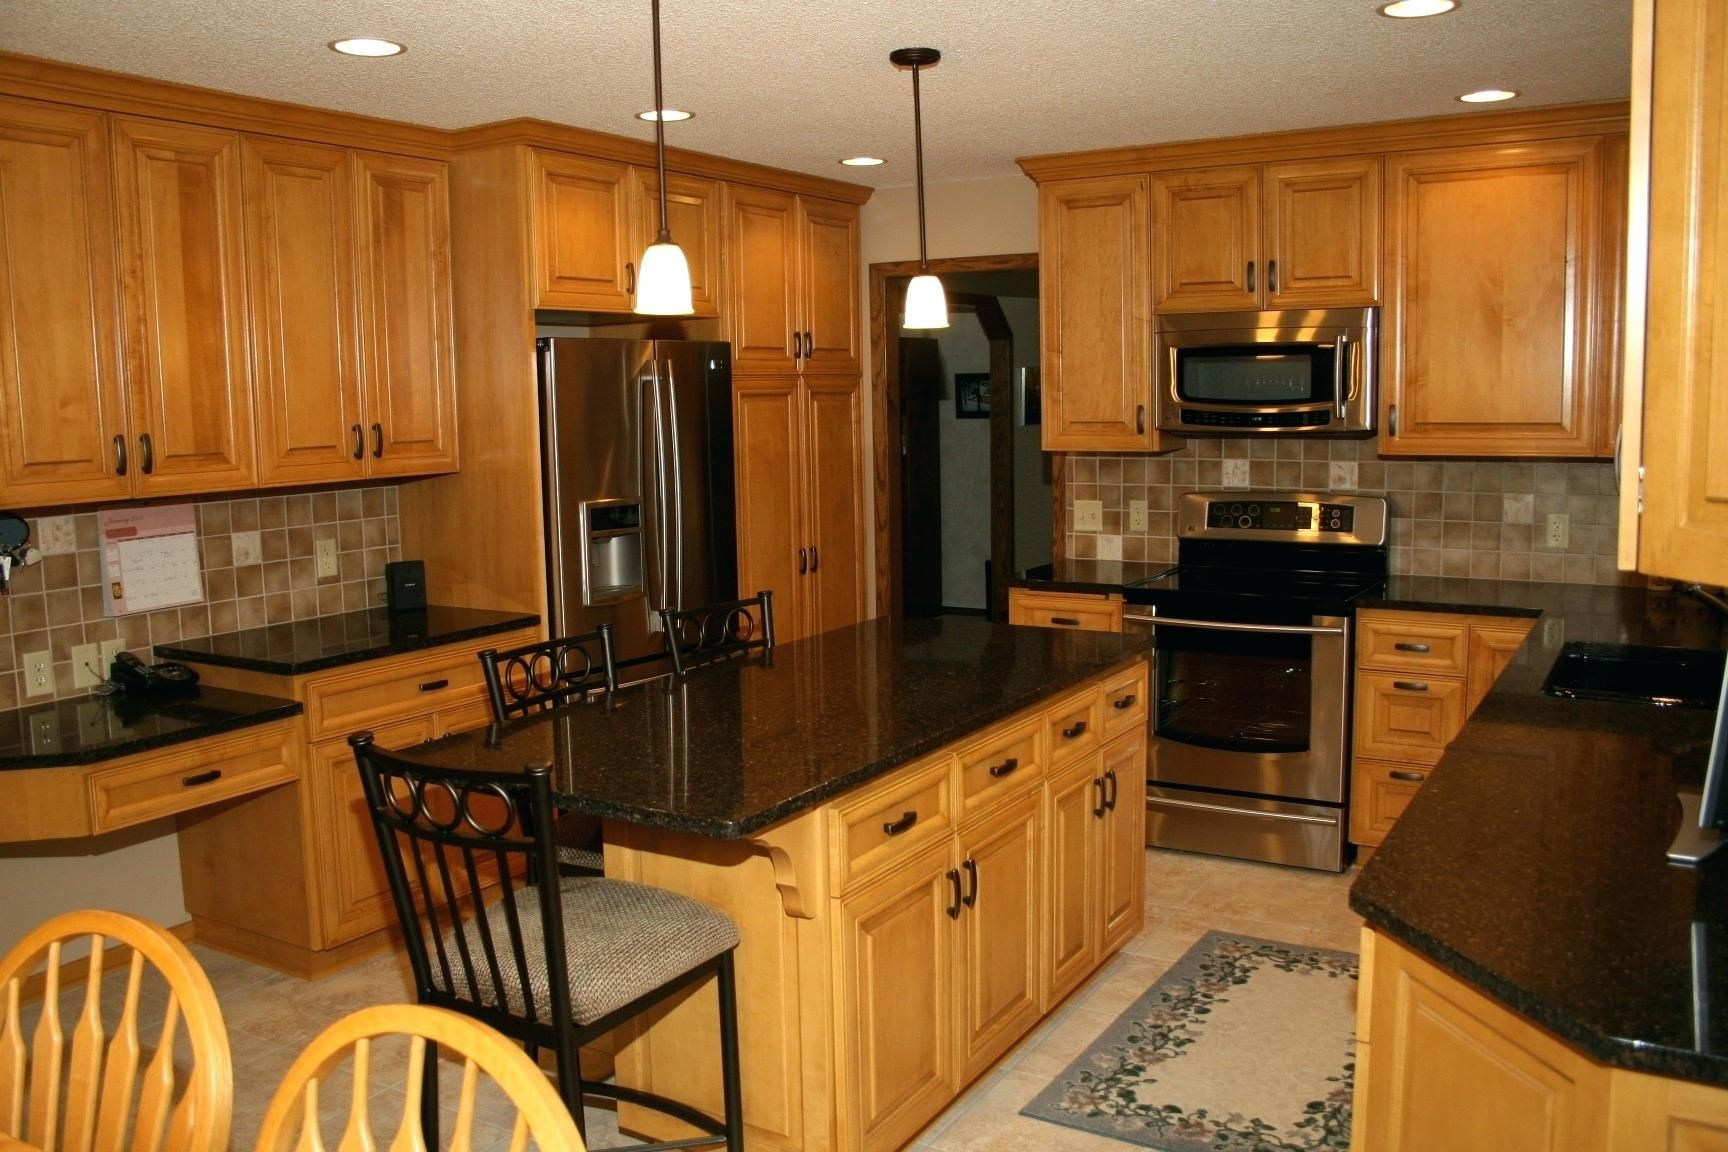 Kitchen-Remodel-Idea-with-Honey-Oak-Cabinets-using-Black ... on Maple Cabinets With Black Granite Countertops  id=14676